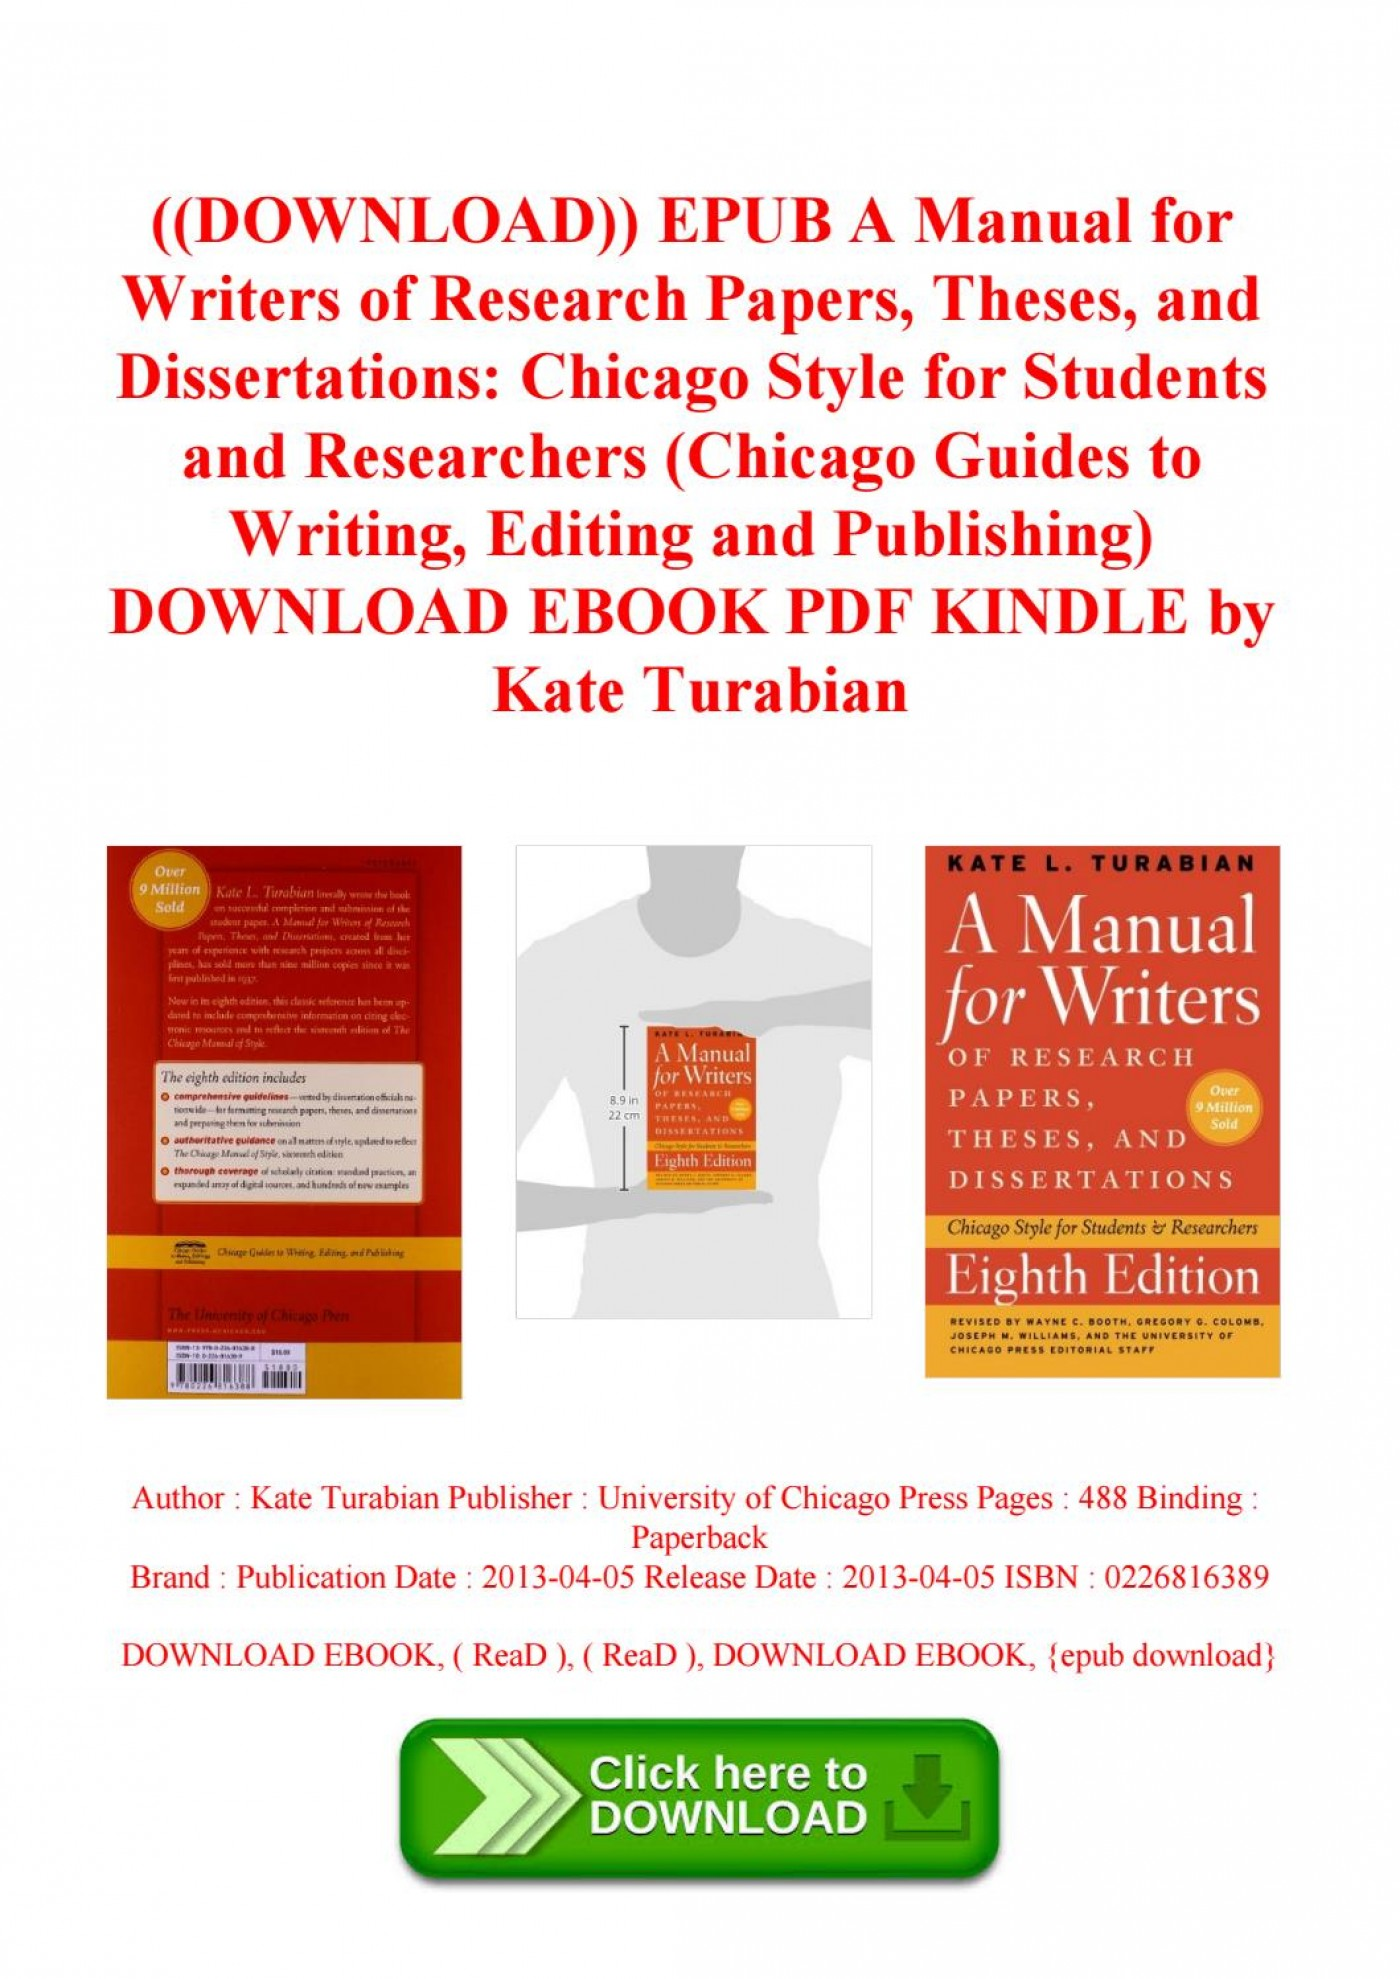 006 Page 1 Research Paper Manual For Writers Of Papers Theses And Sensational A Dissertations Ed. 8 8th Edition Ninth Pdf 1400